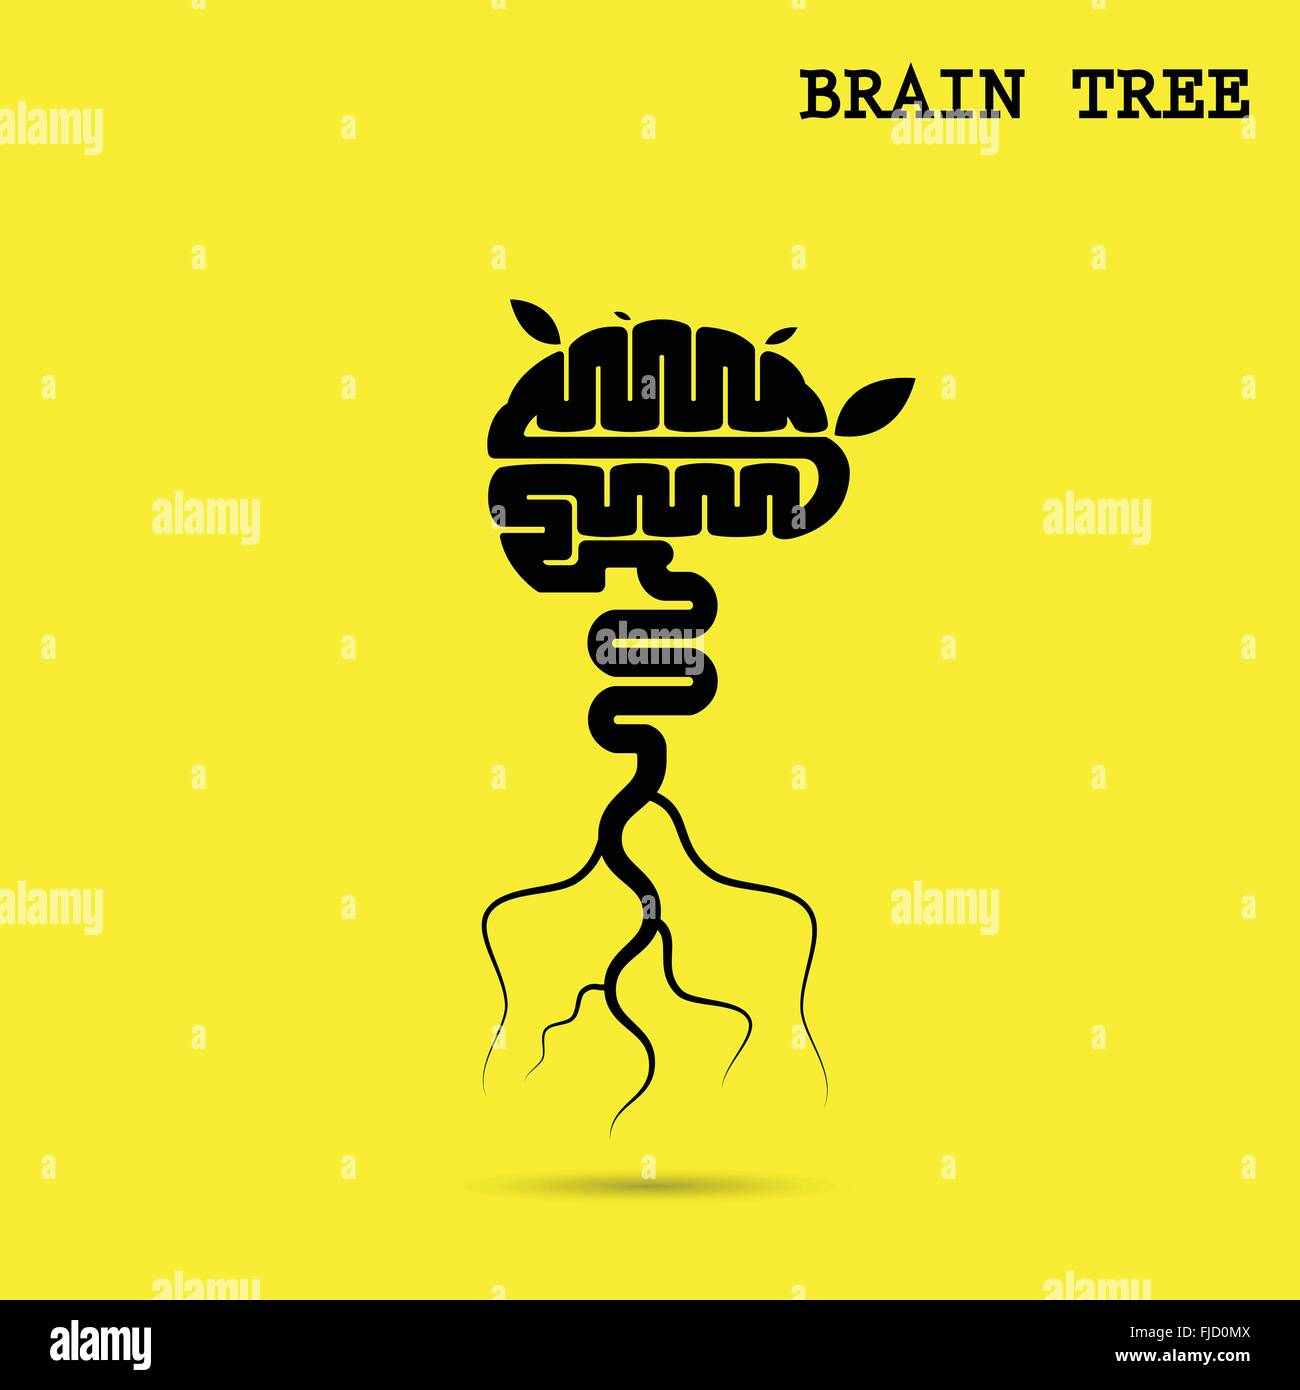 brain vector logo - photo #47